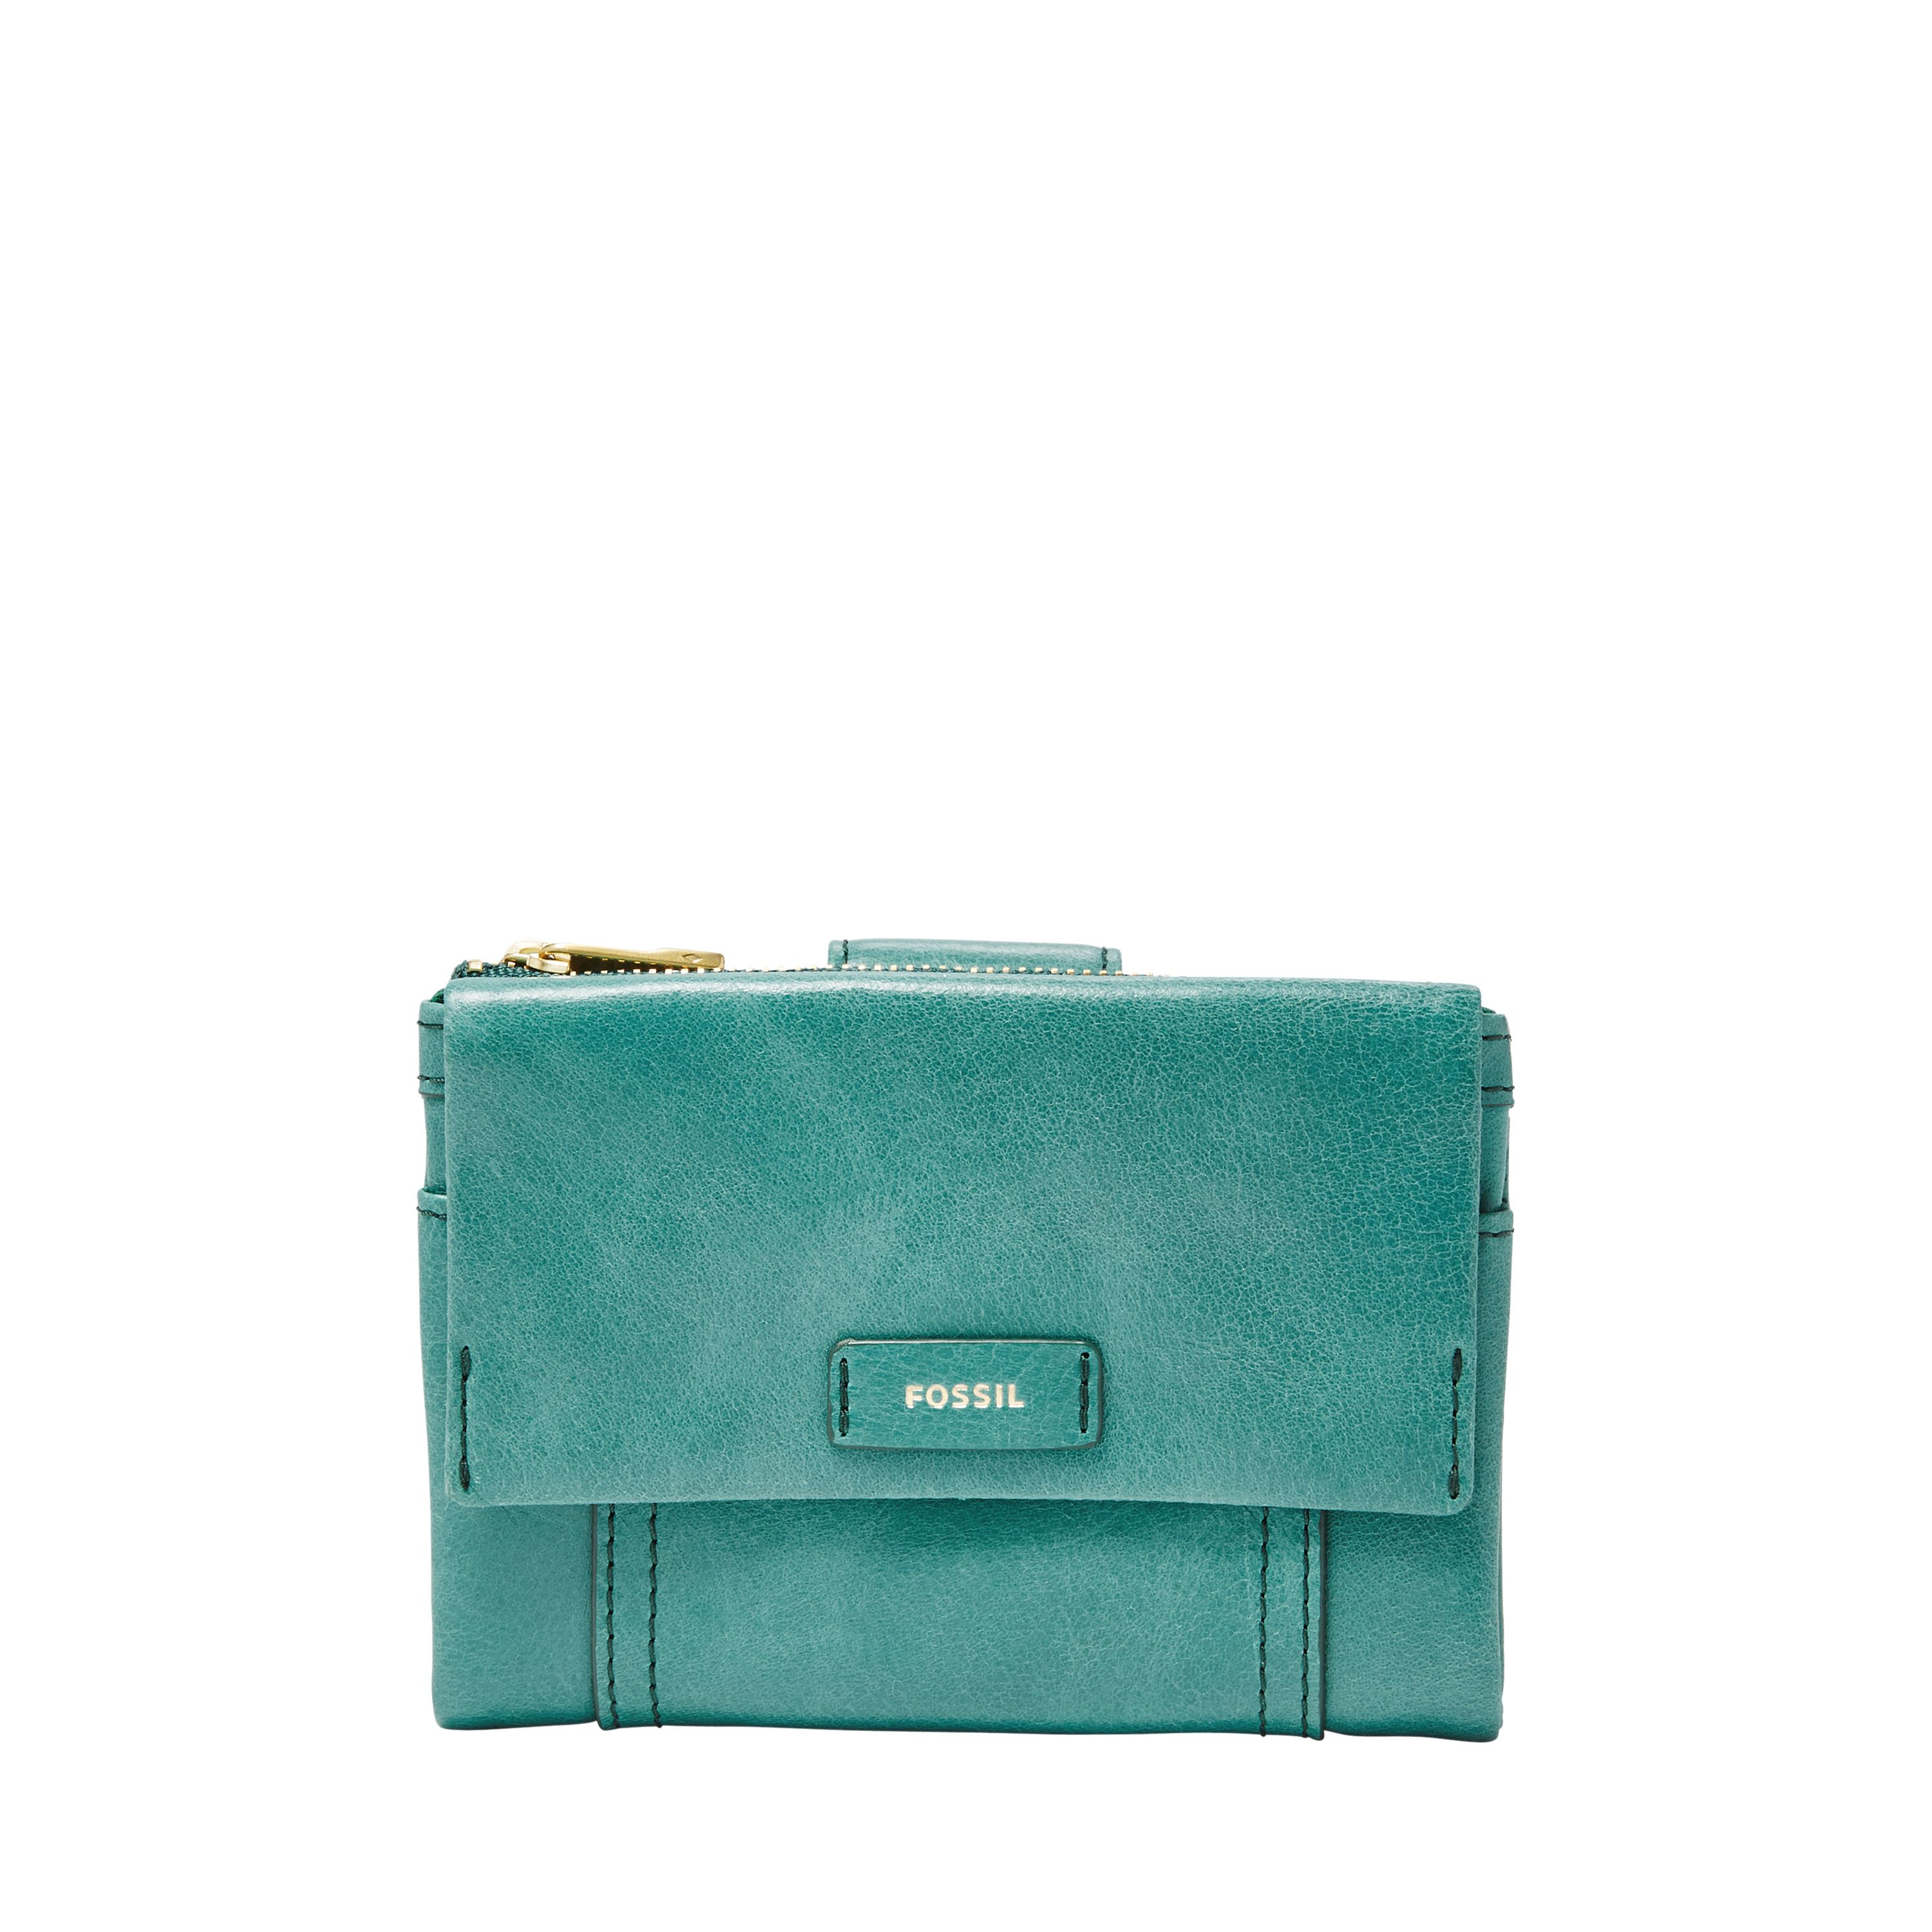 Fossil Ellis multifunction pouch Teal